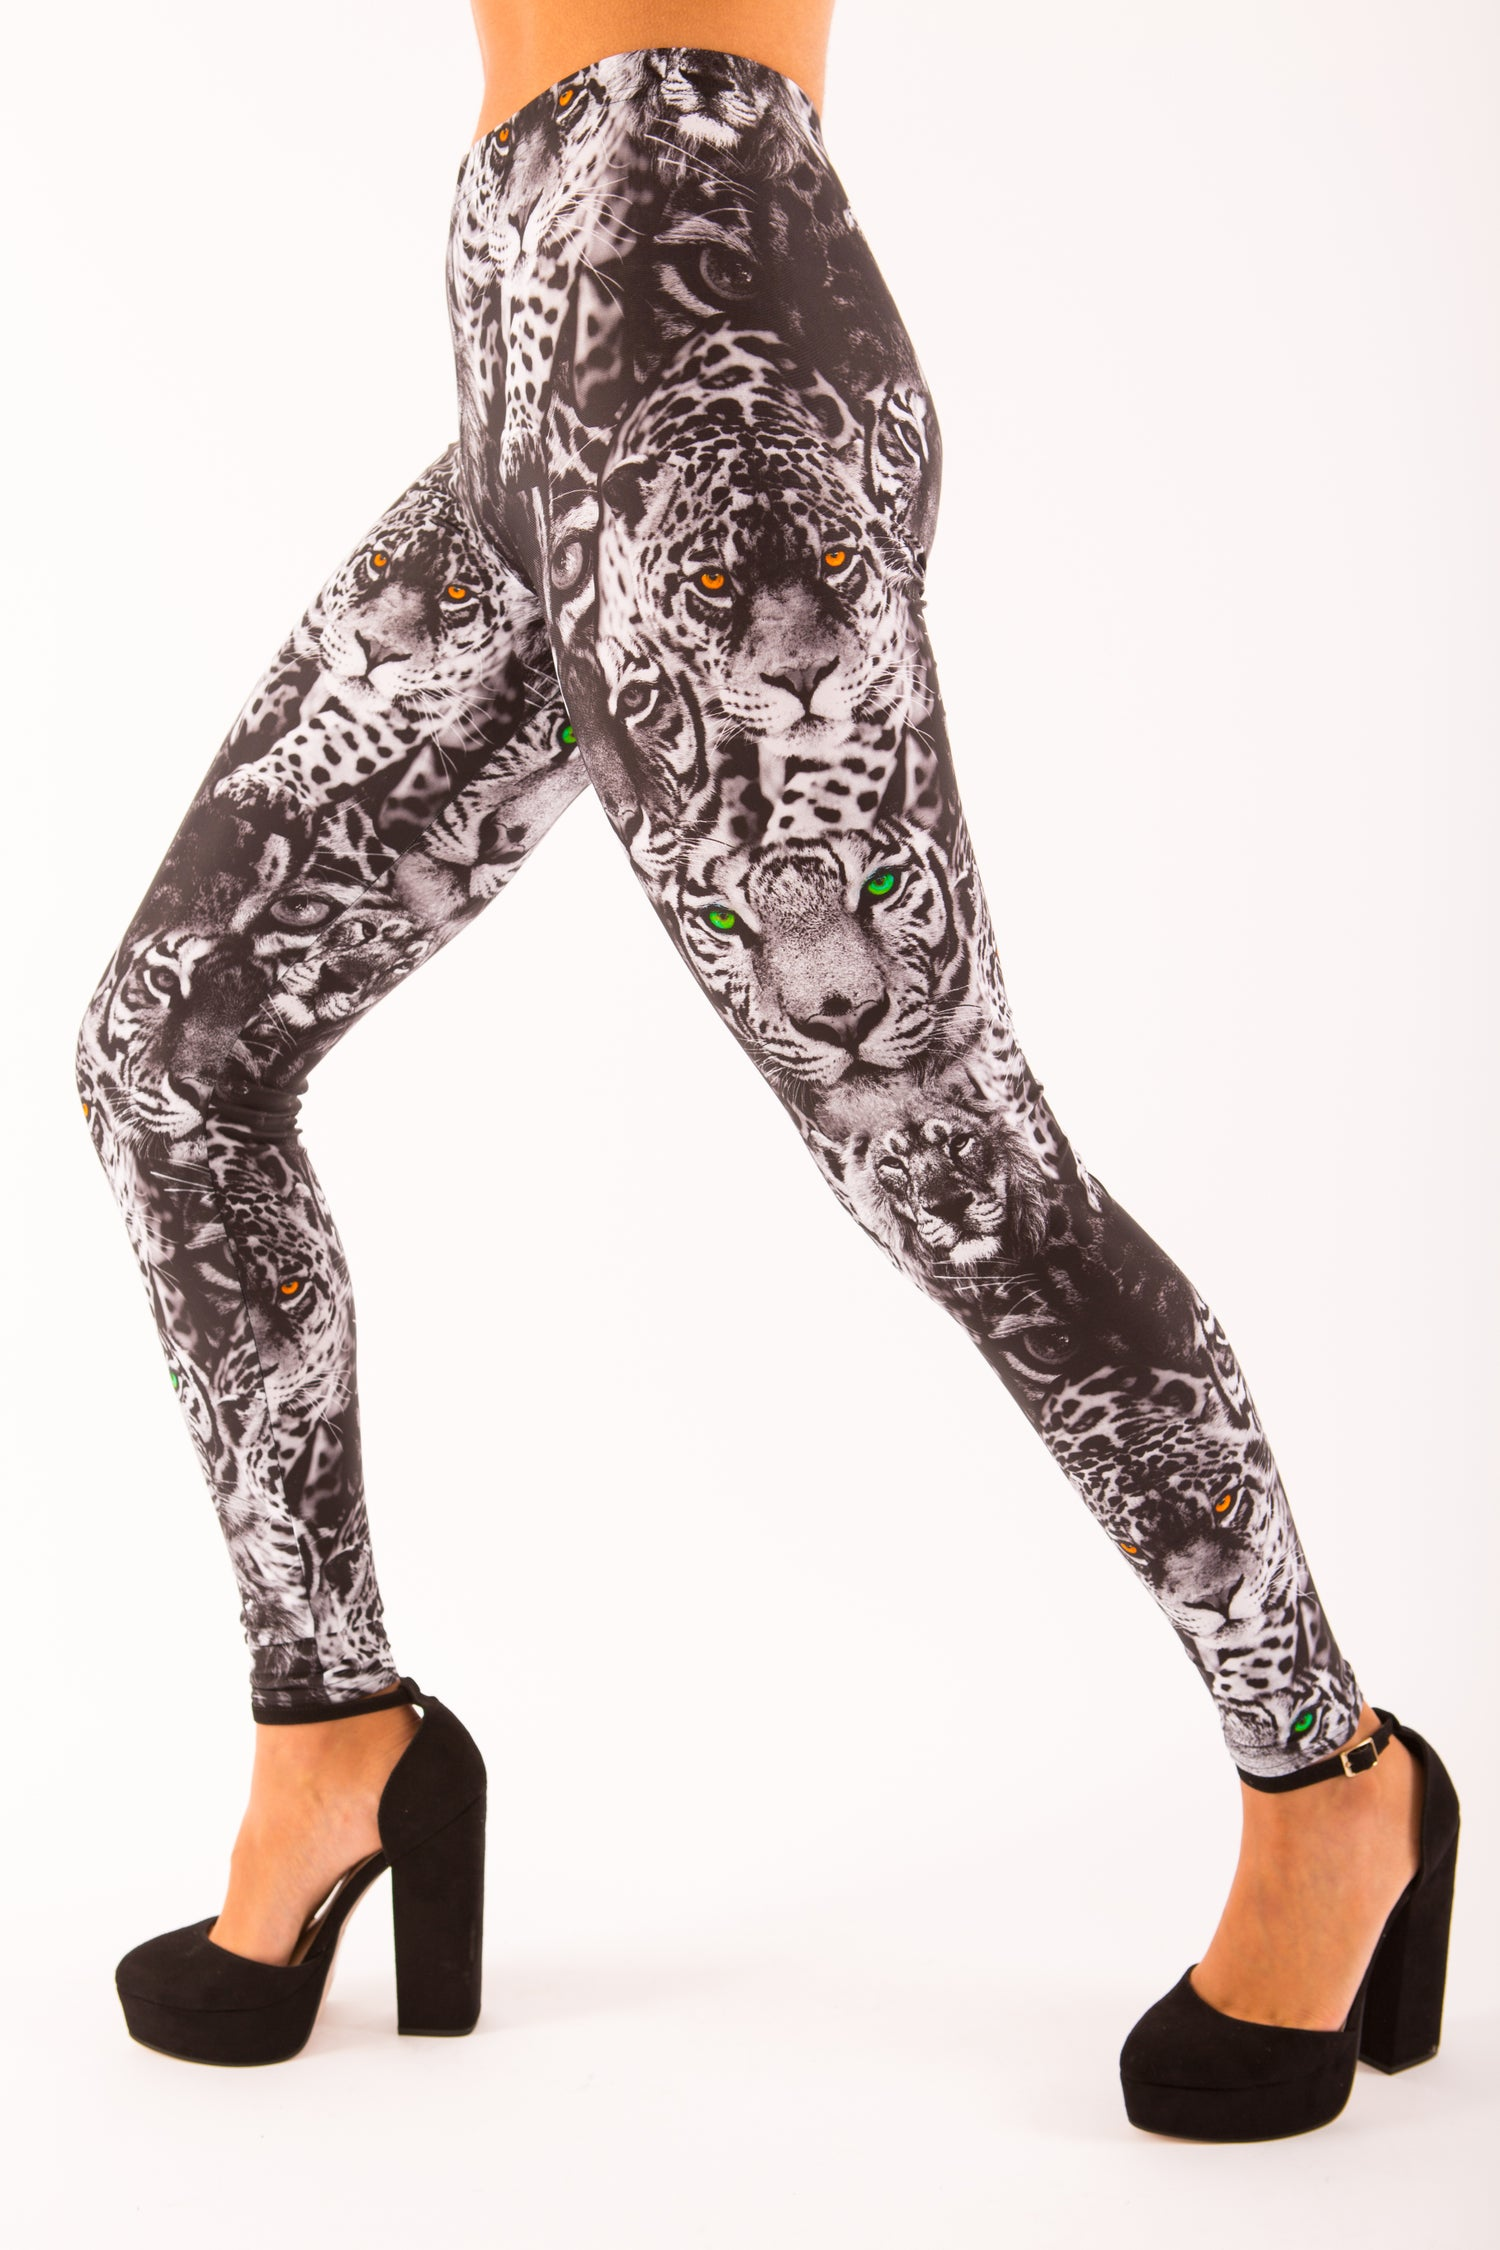 Image of Jungle Cat Leggings